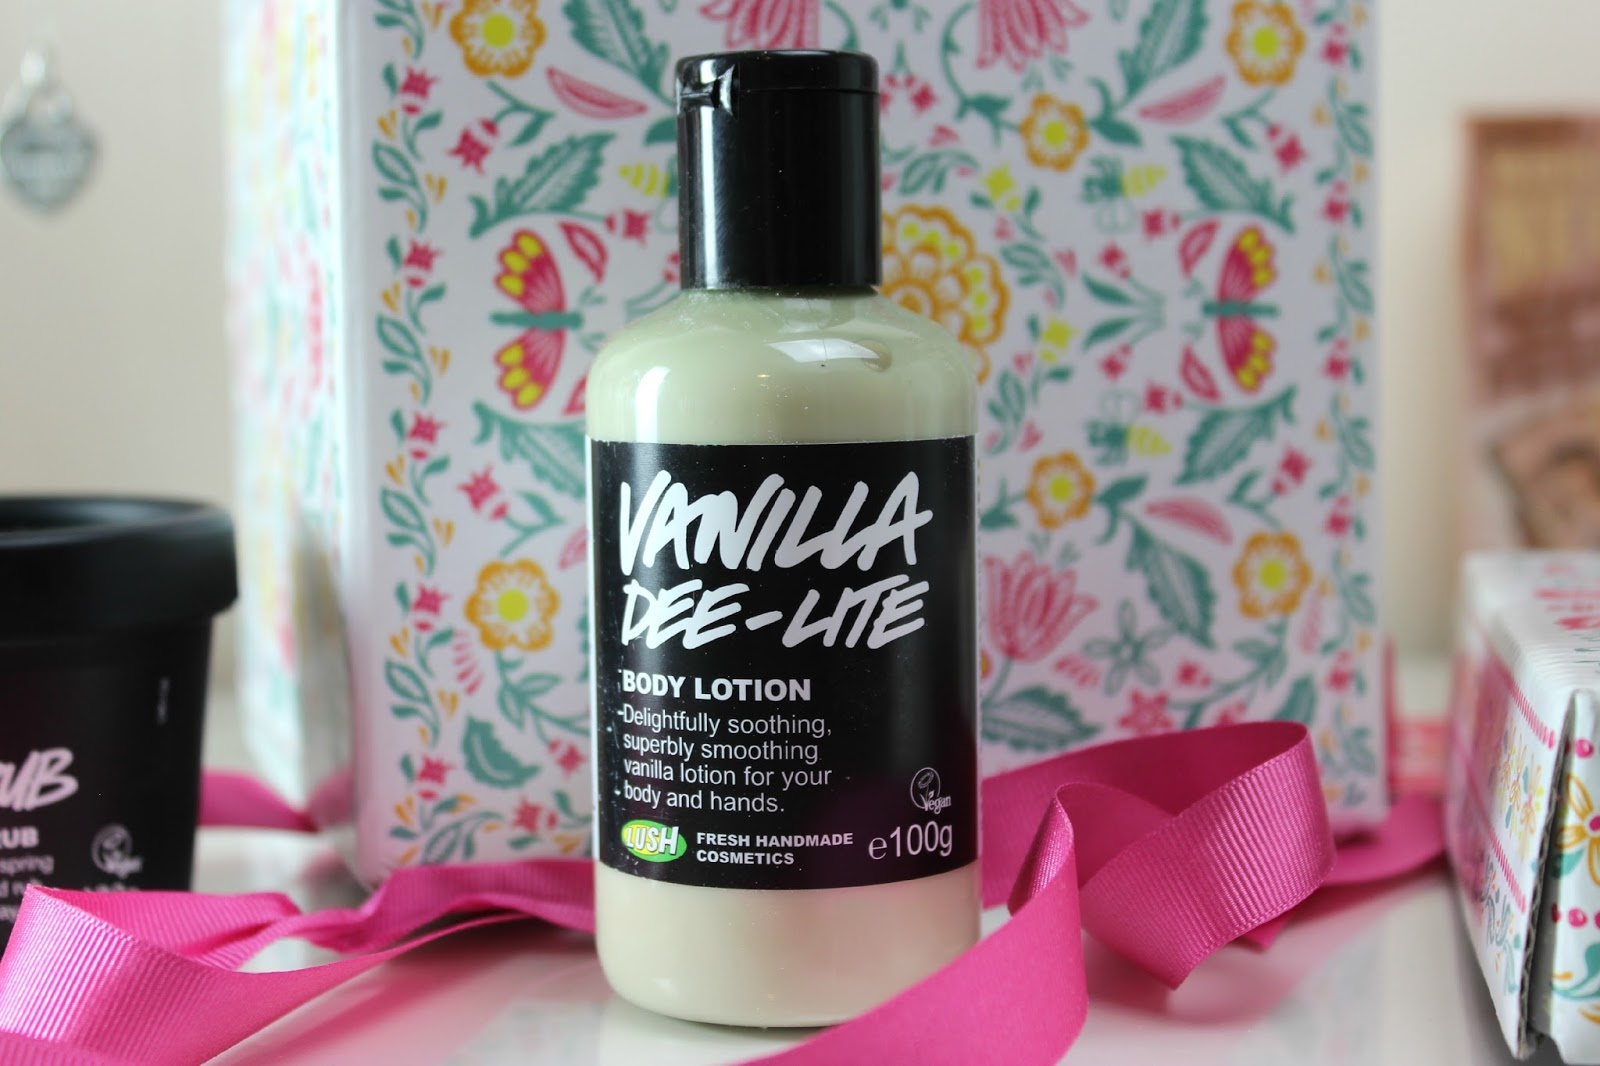 A picture of Lush Vanilla Dee-Lite Body Lotion